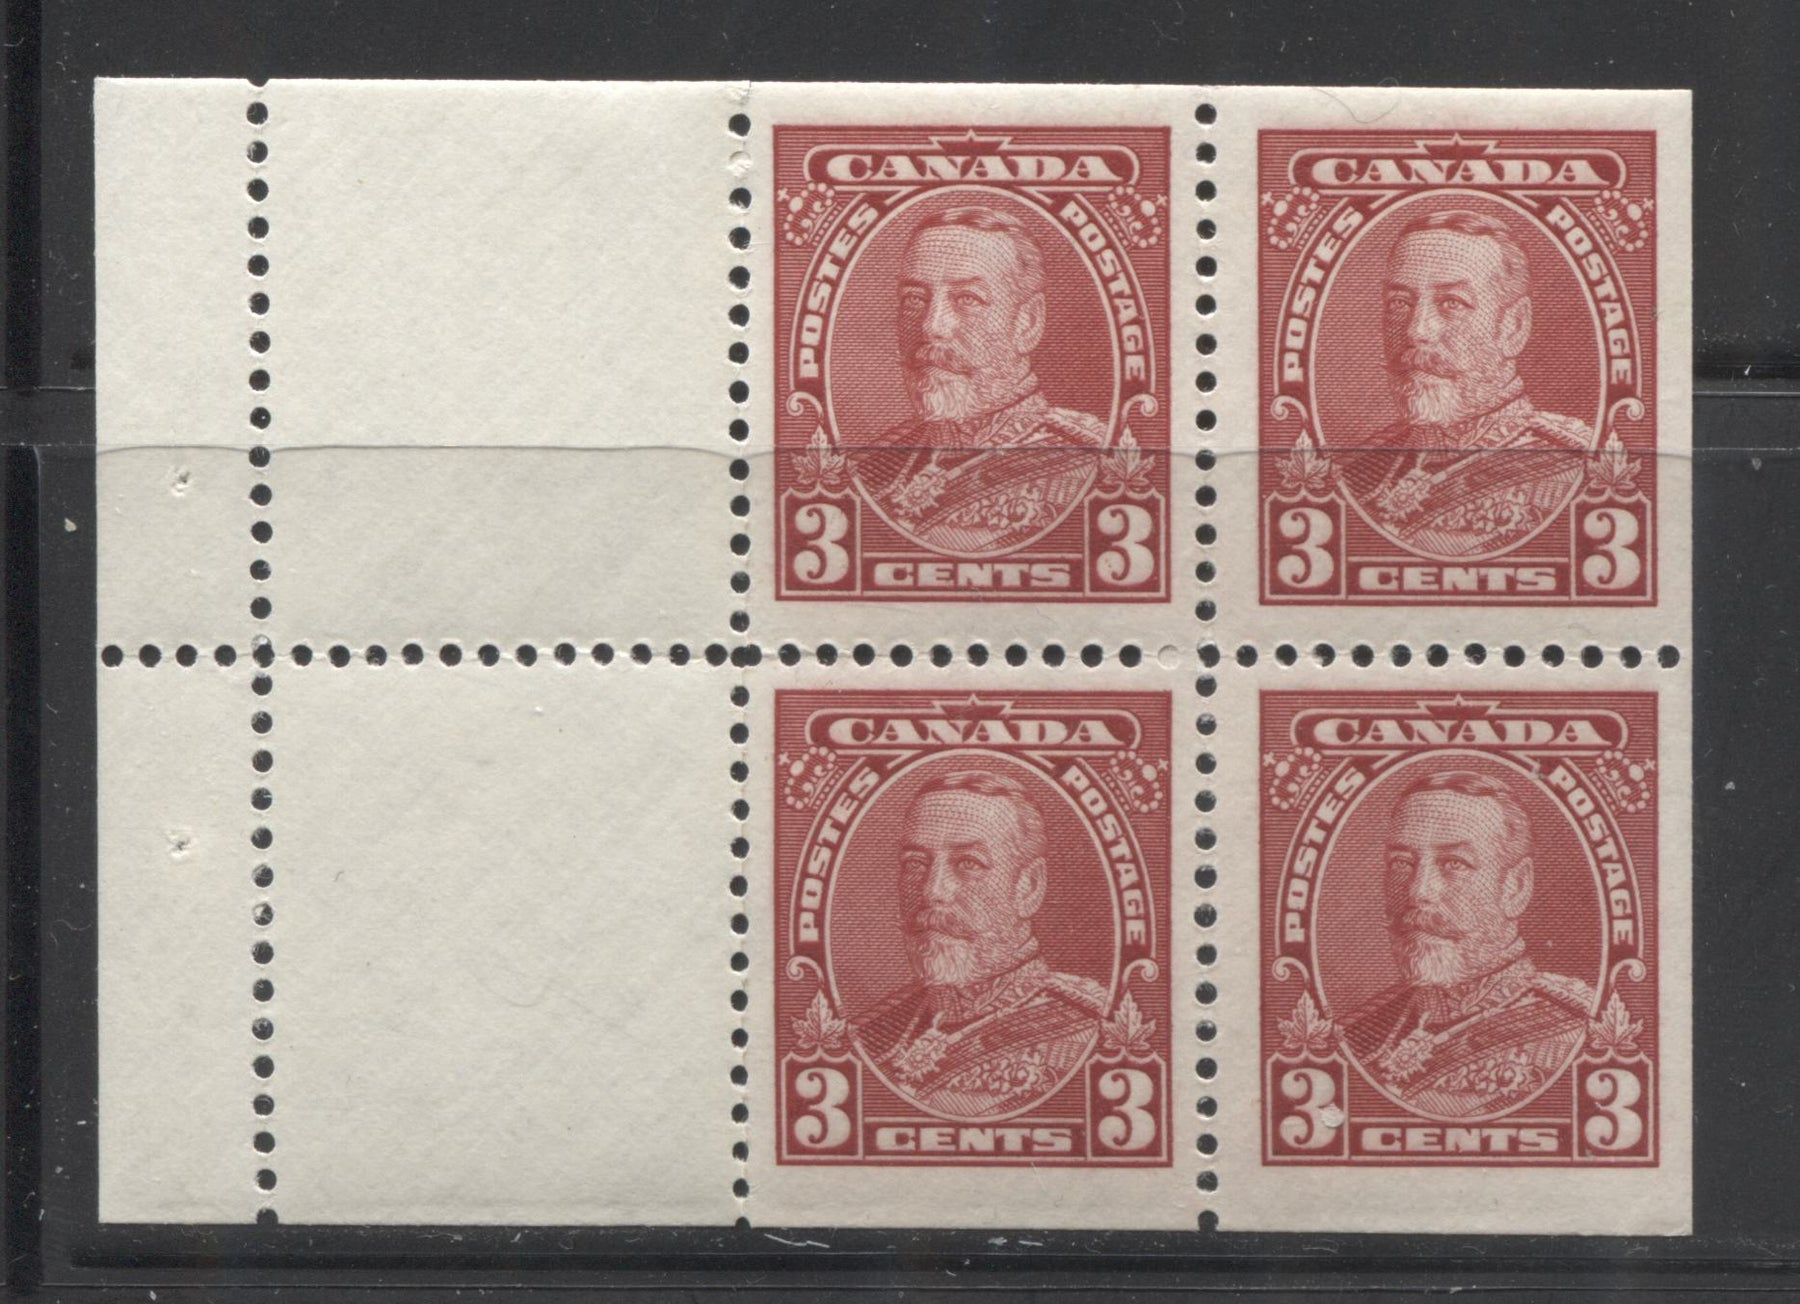 Canada #219a 3c Carmine Red King George V, 1935-1937 Dated Die Issue, Booklet Pane of 4 + 2 Labels, A Fine NH Example, Crackly Cream Gum, Vertical Wove